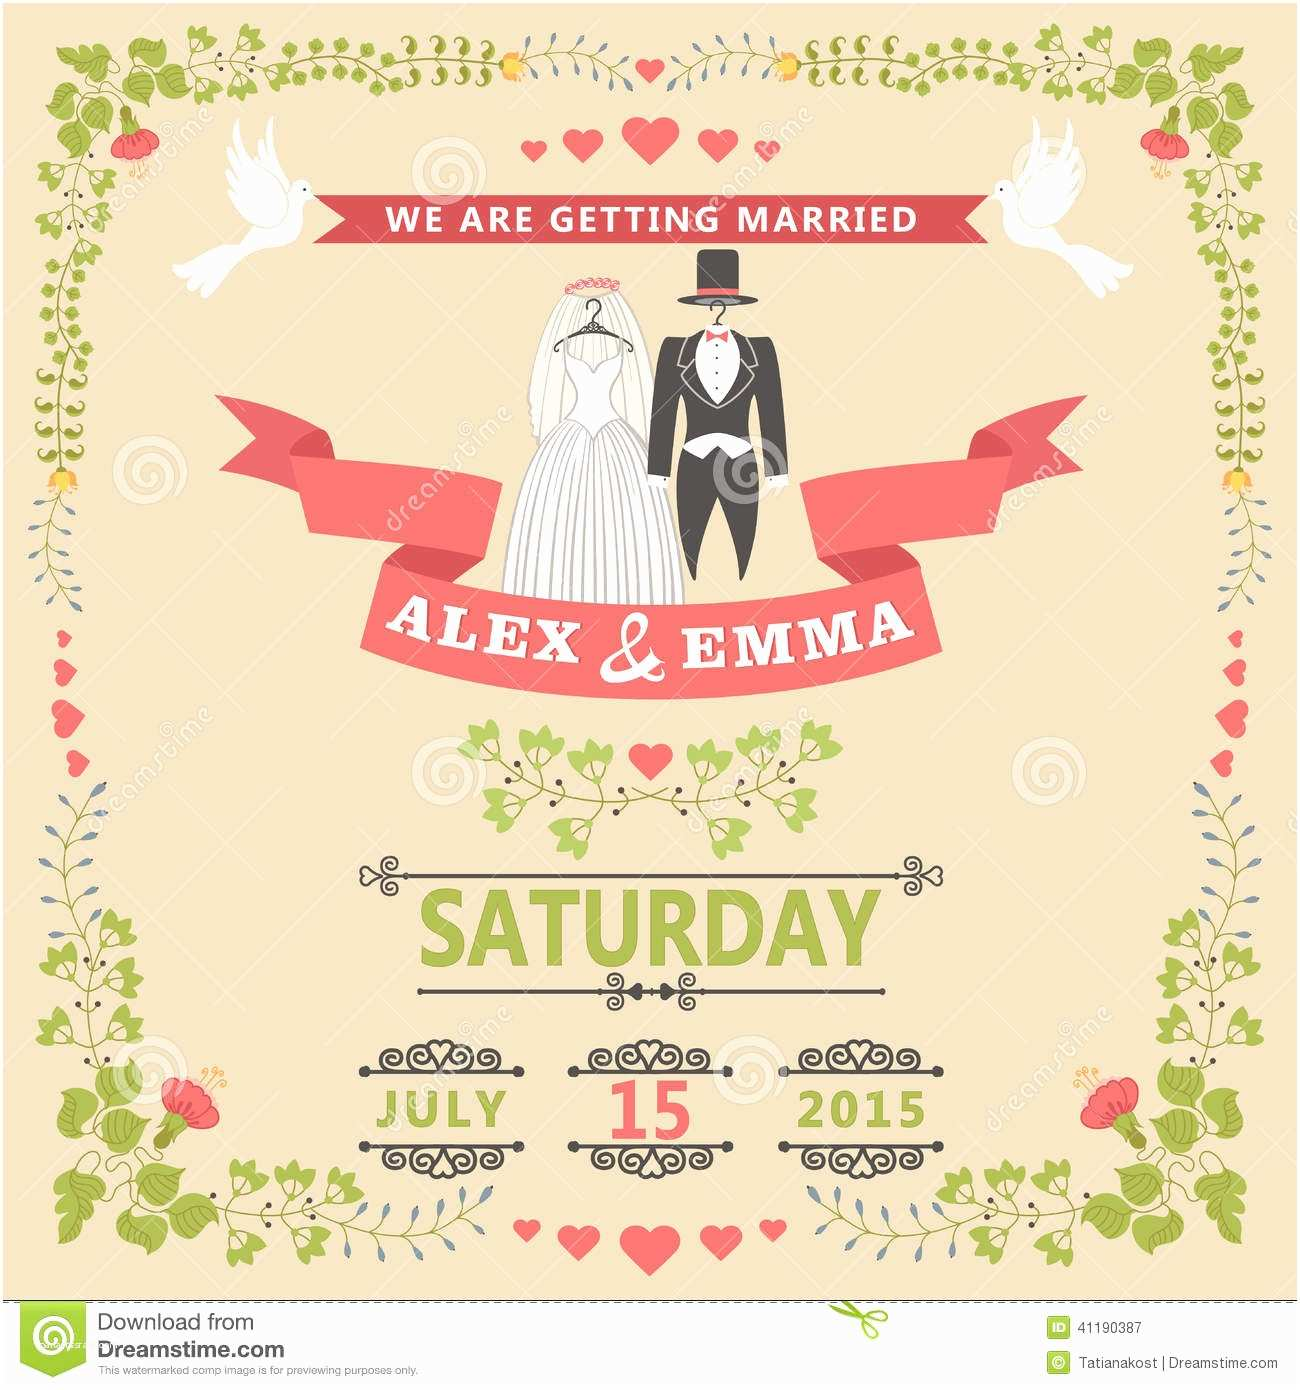 Time Frame for Wedding Invitations Wedding Invitation with Wedding Clothes and Floral Frame